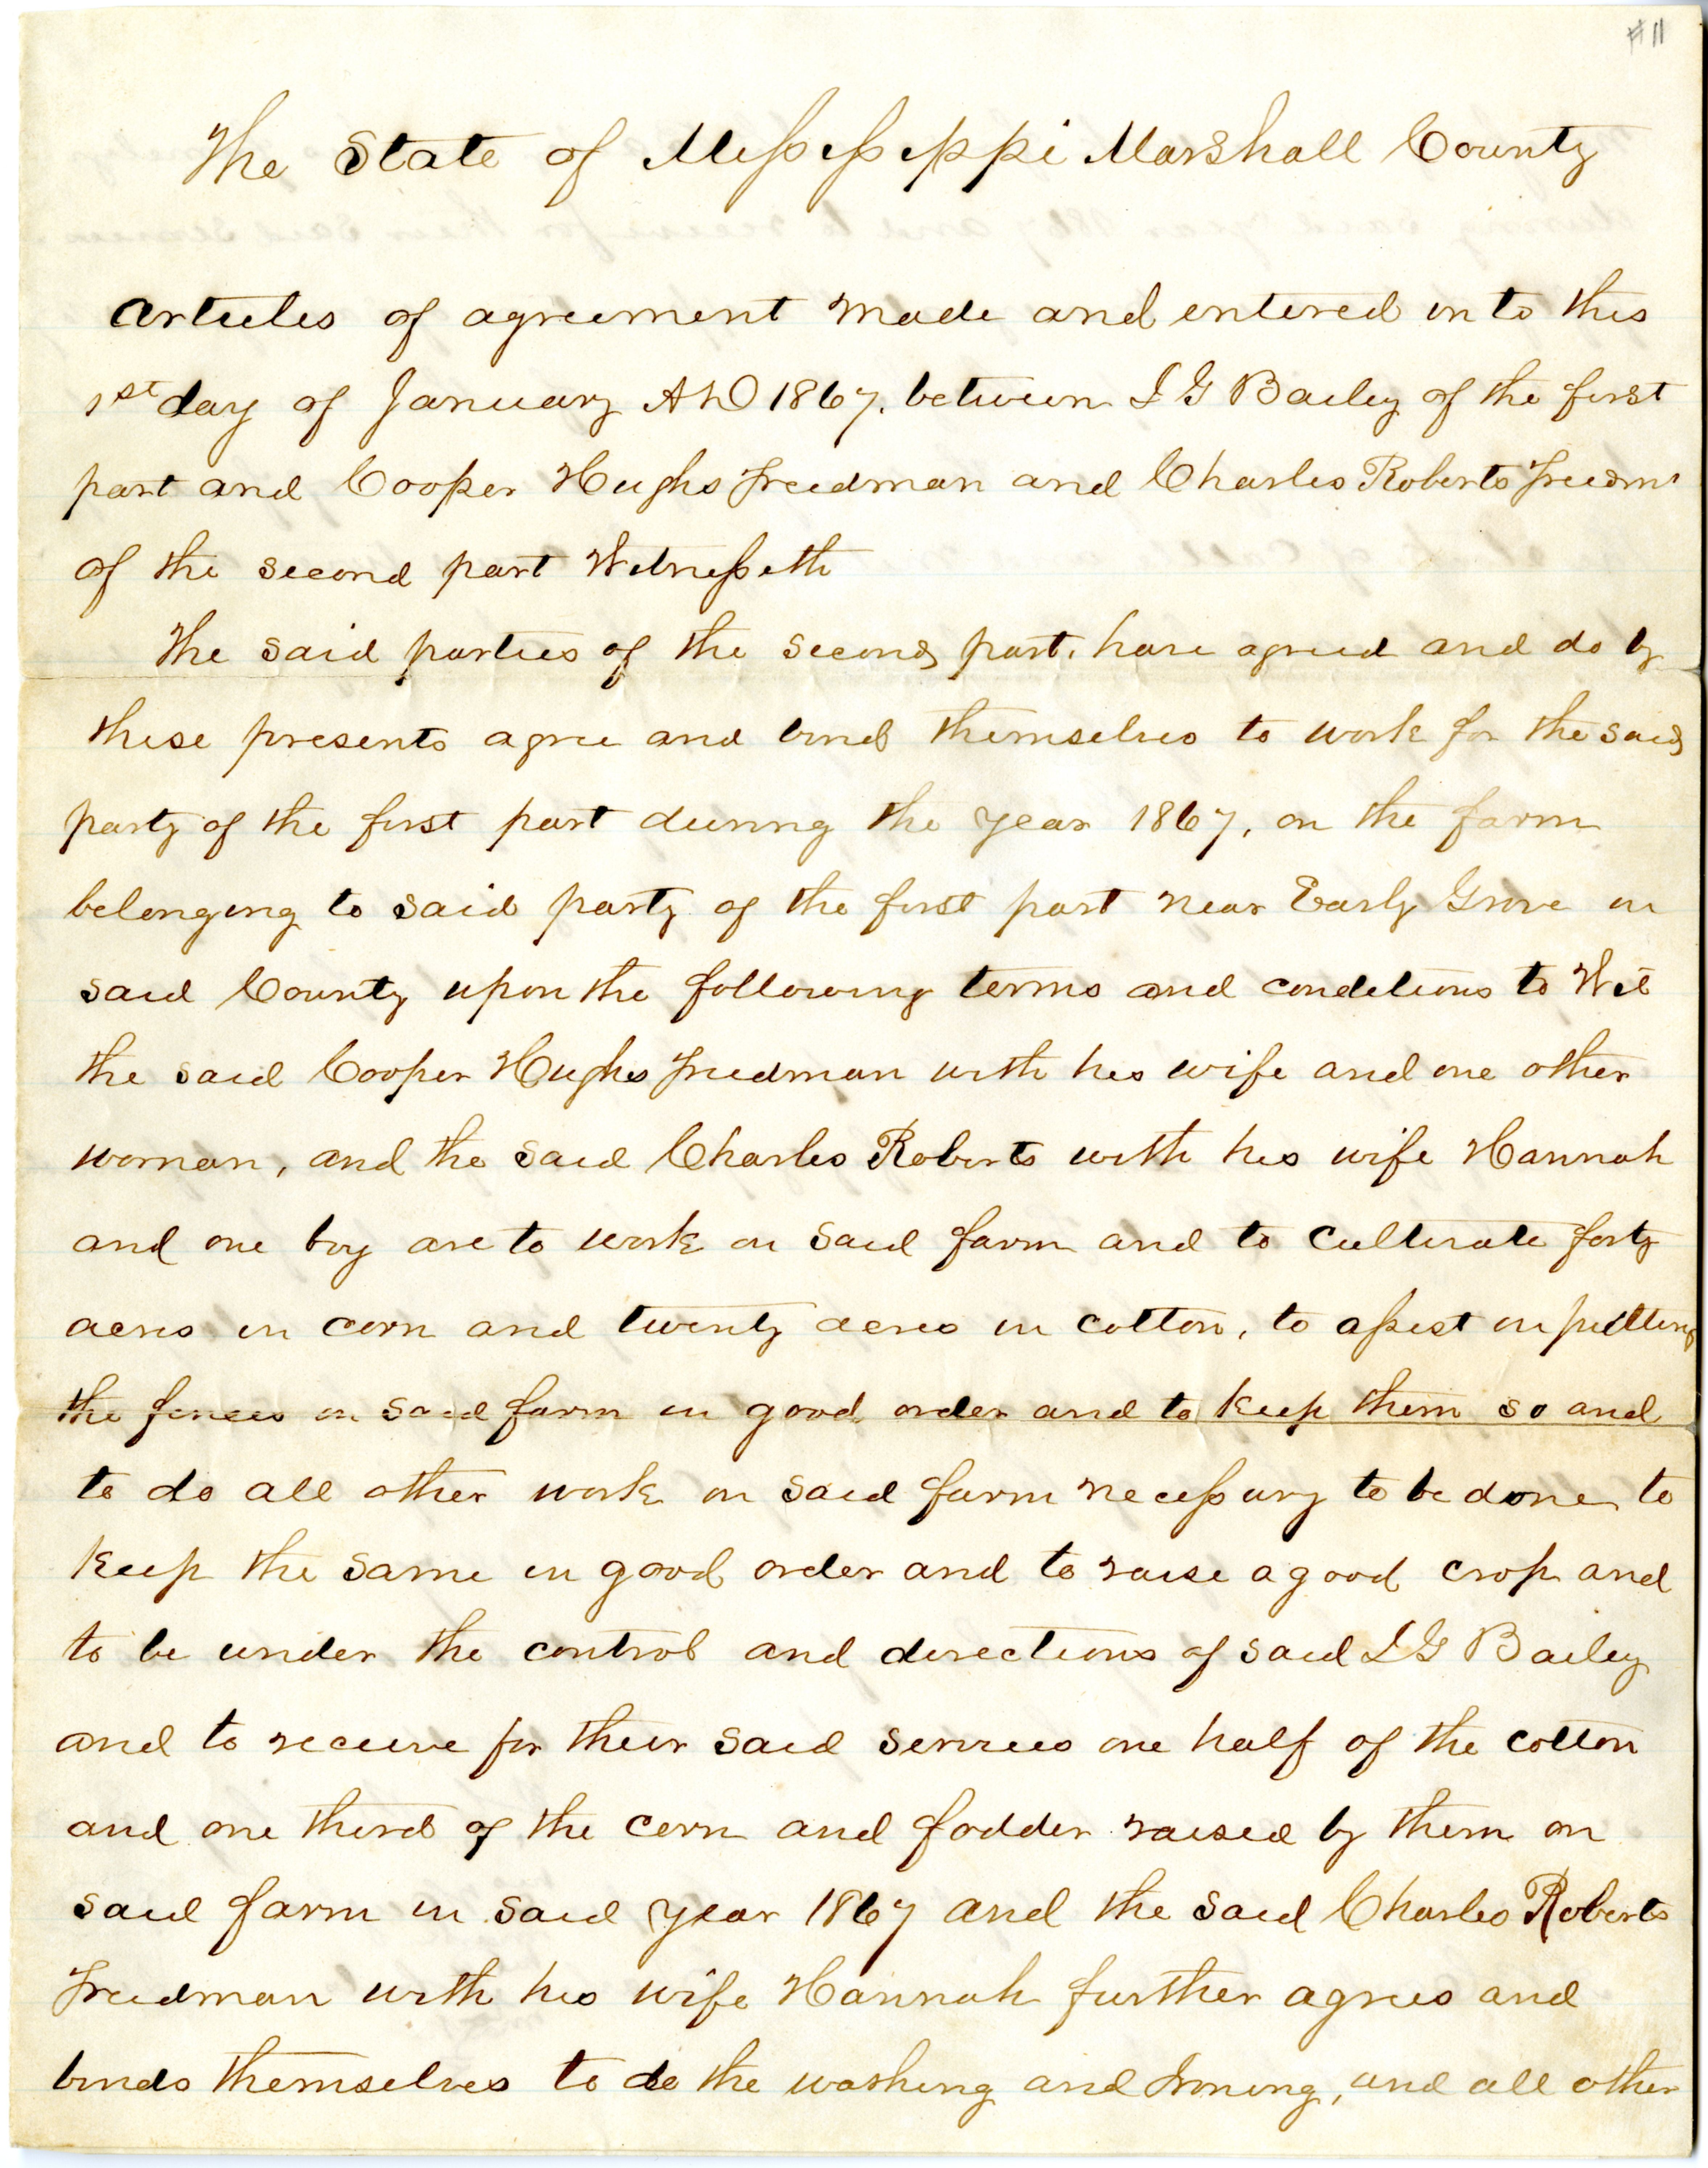 Freedmen's contract between Isham G. Bailey and freedmen Cooper Hughs and Charl